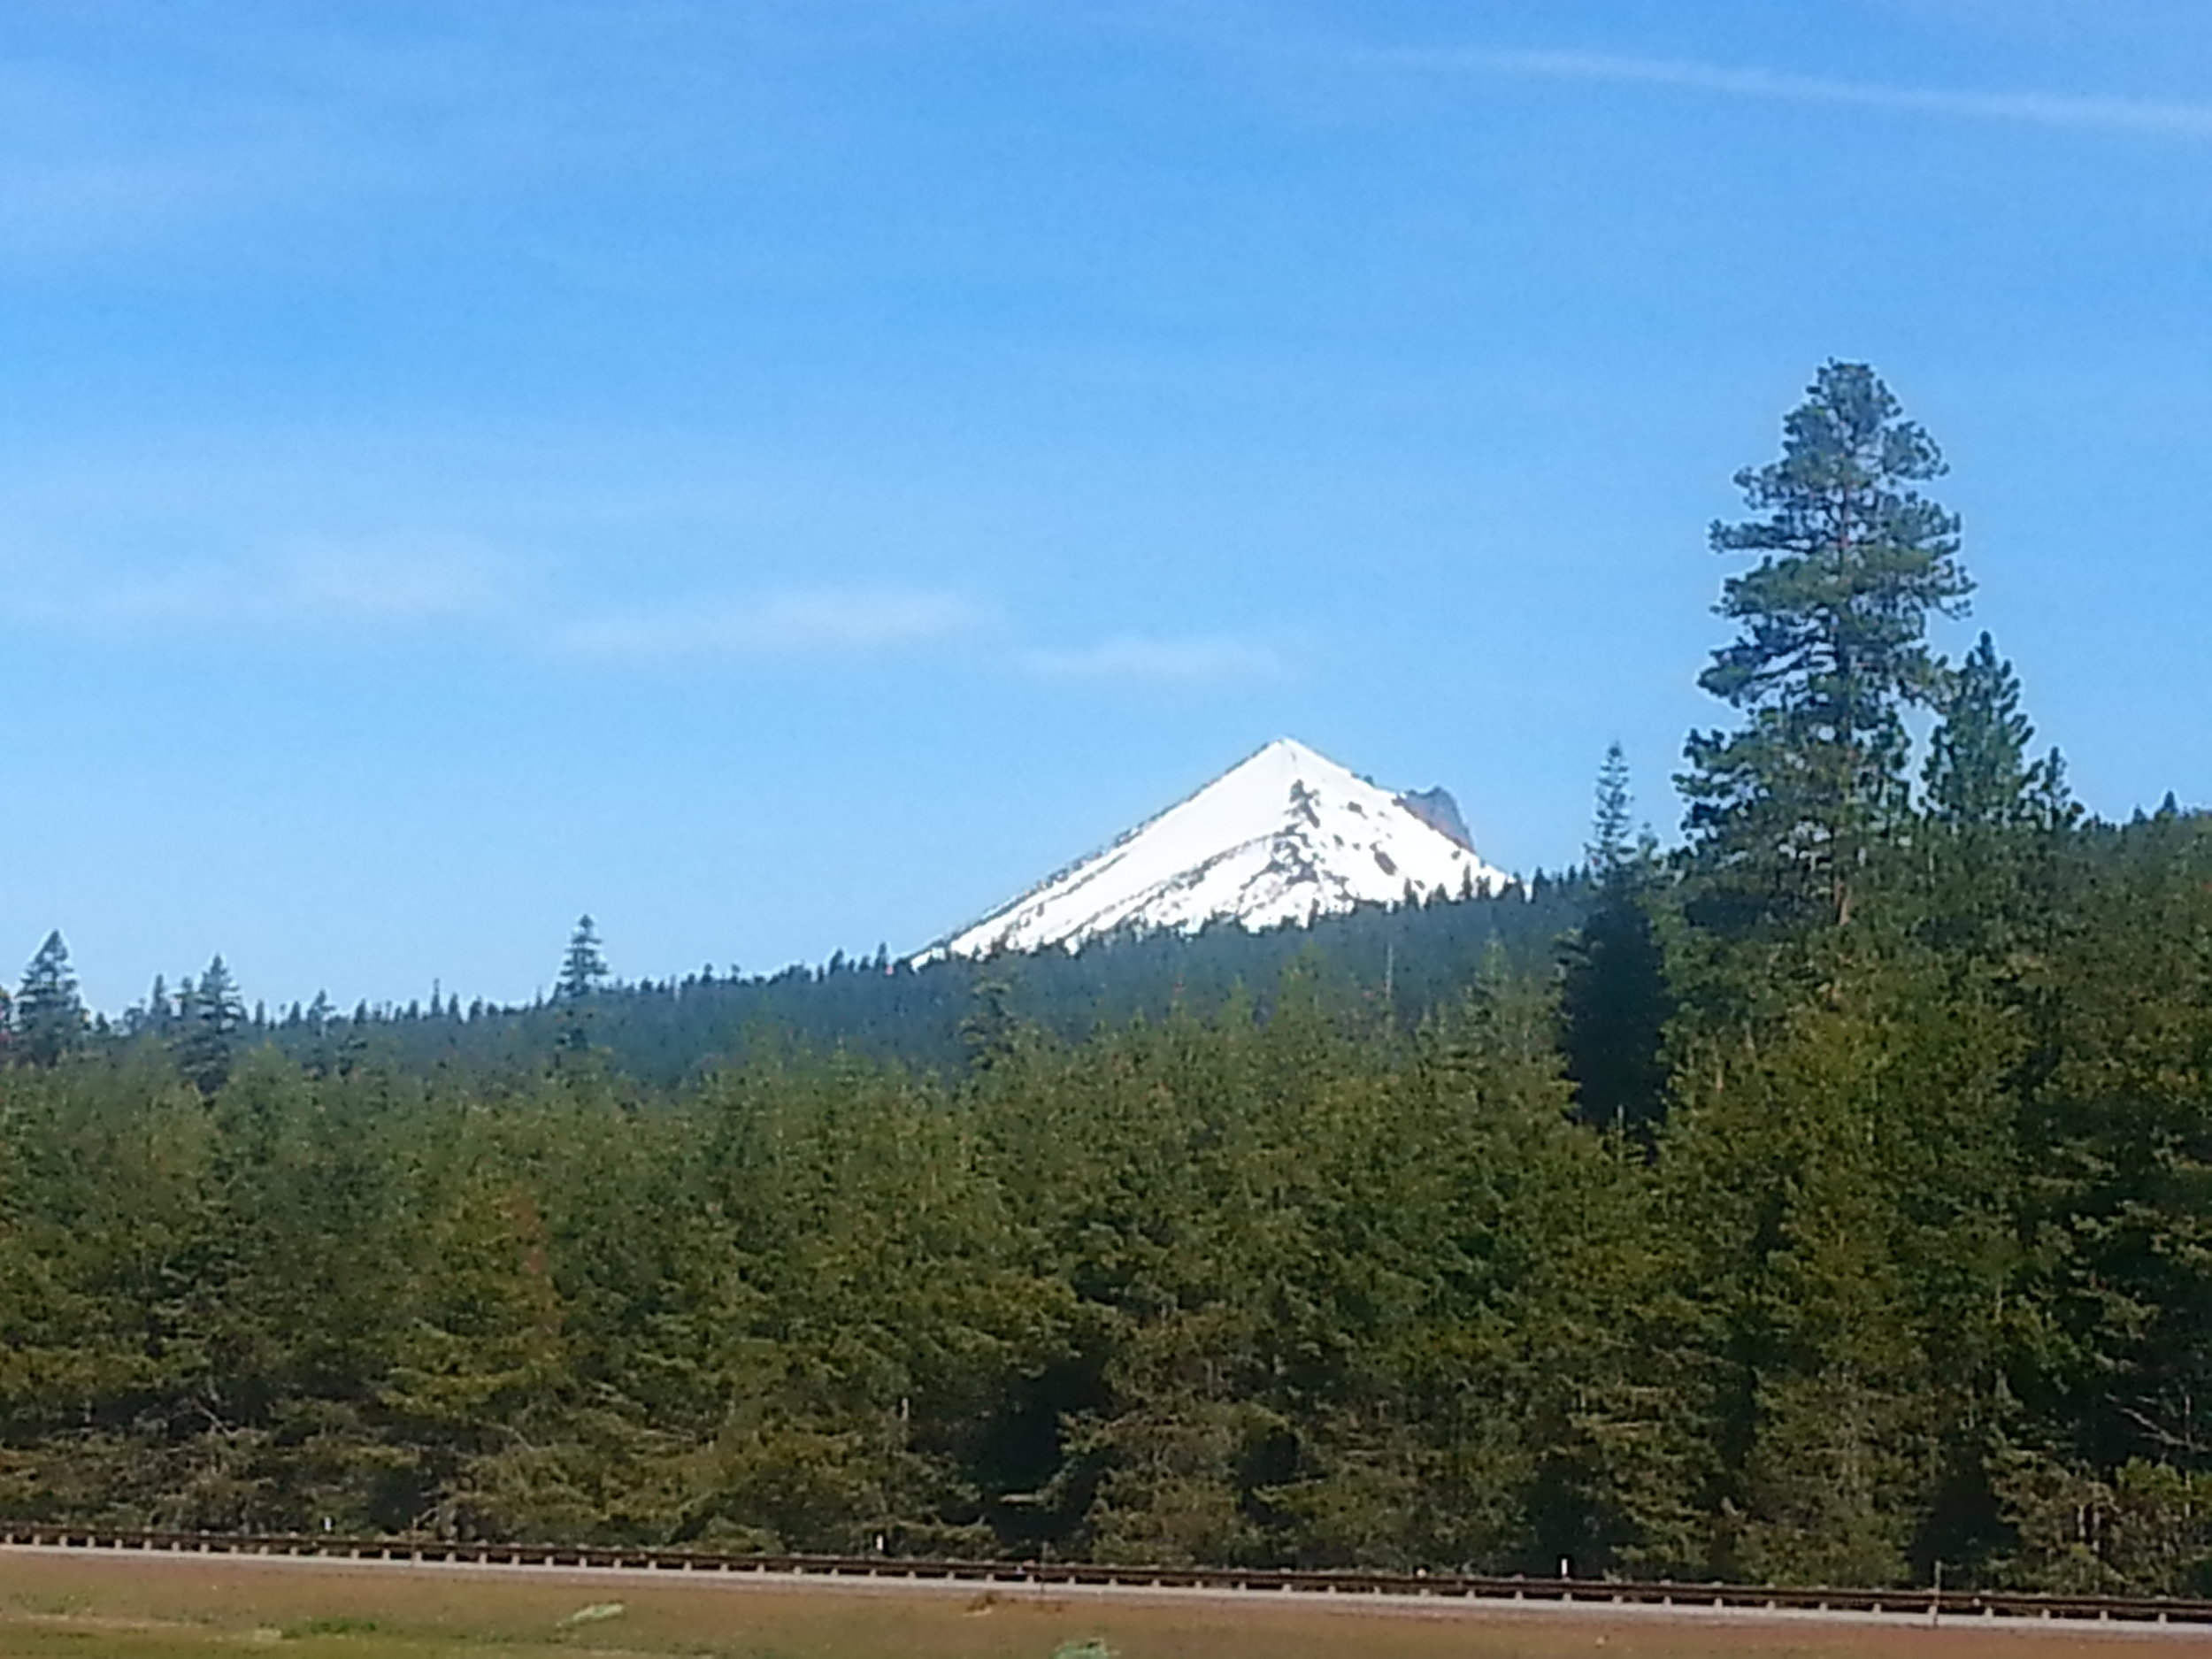 MT SHASTA - LAVA BEDS NATIONAL MONUMENT - What to do in Southern Oregon- Things to do - Hiking - Caves - Kids